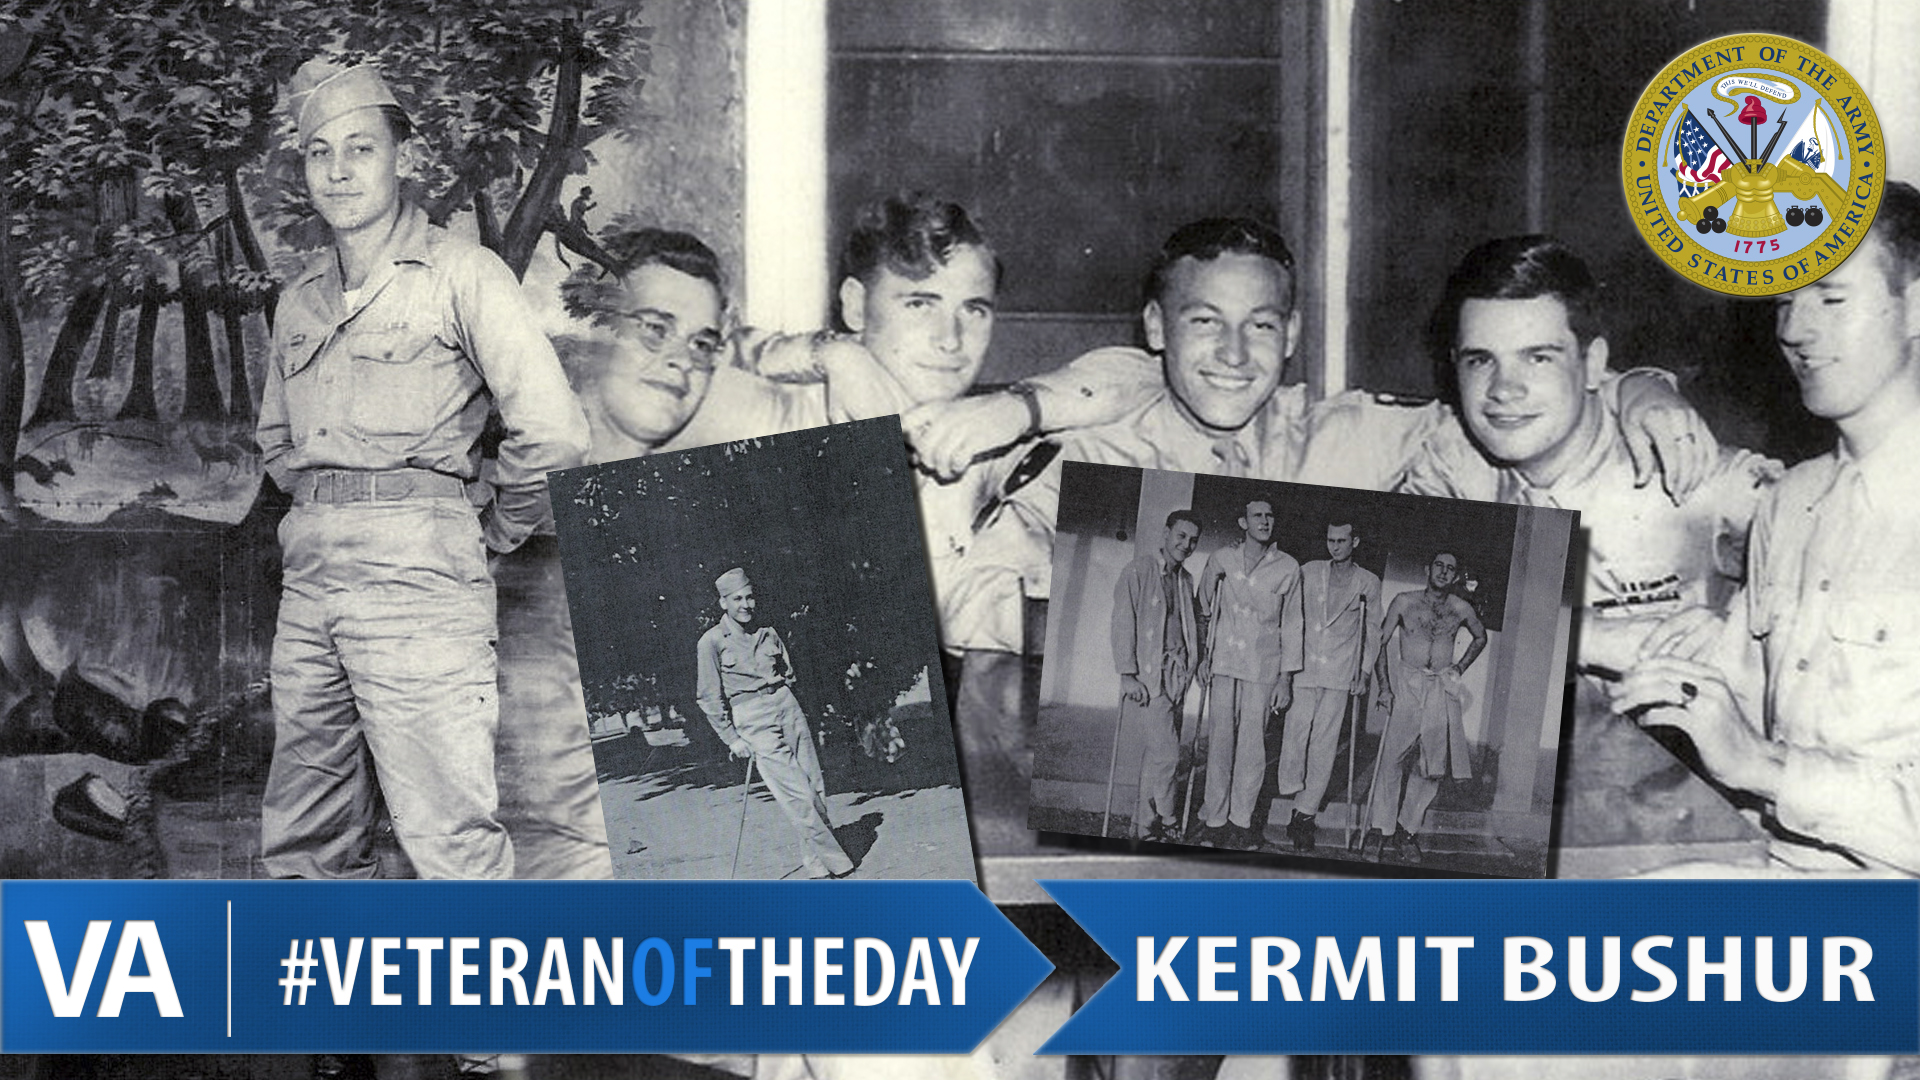 Veteranoftheday Kermit Tony Bushur Vantage Point